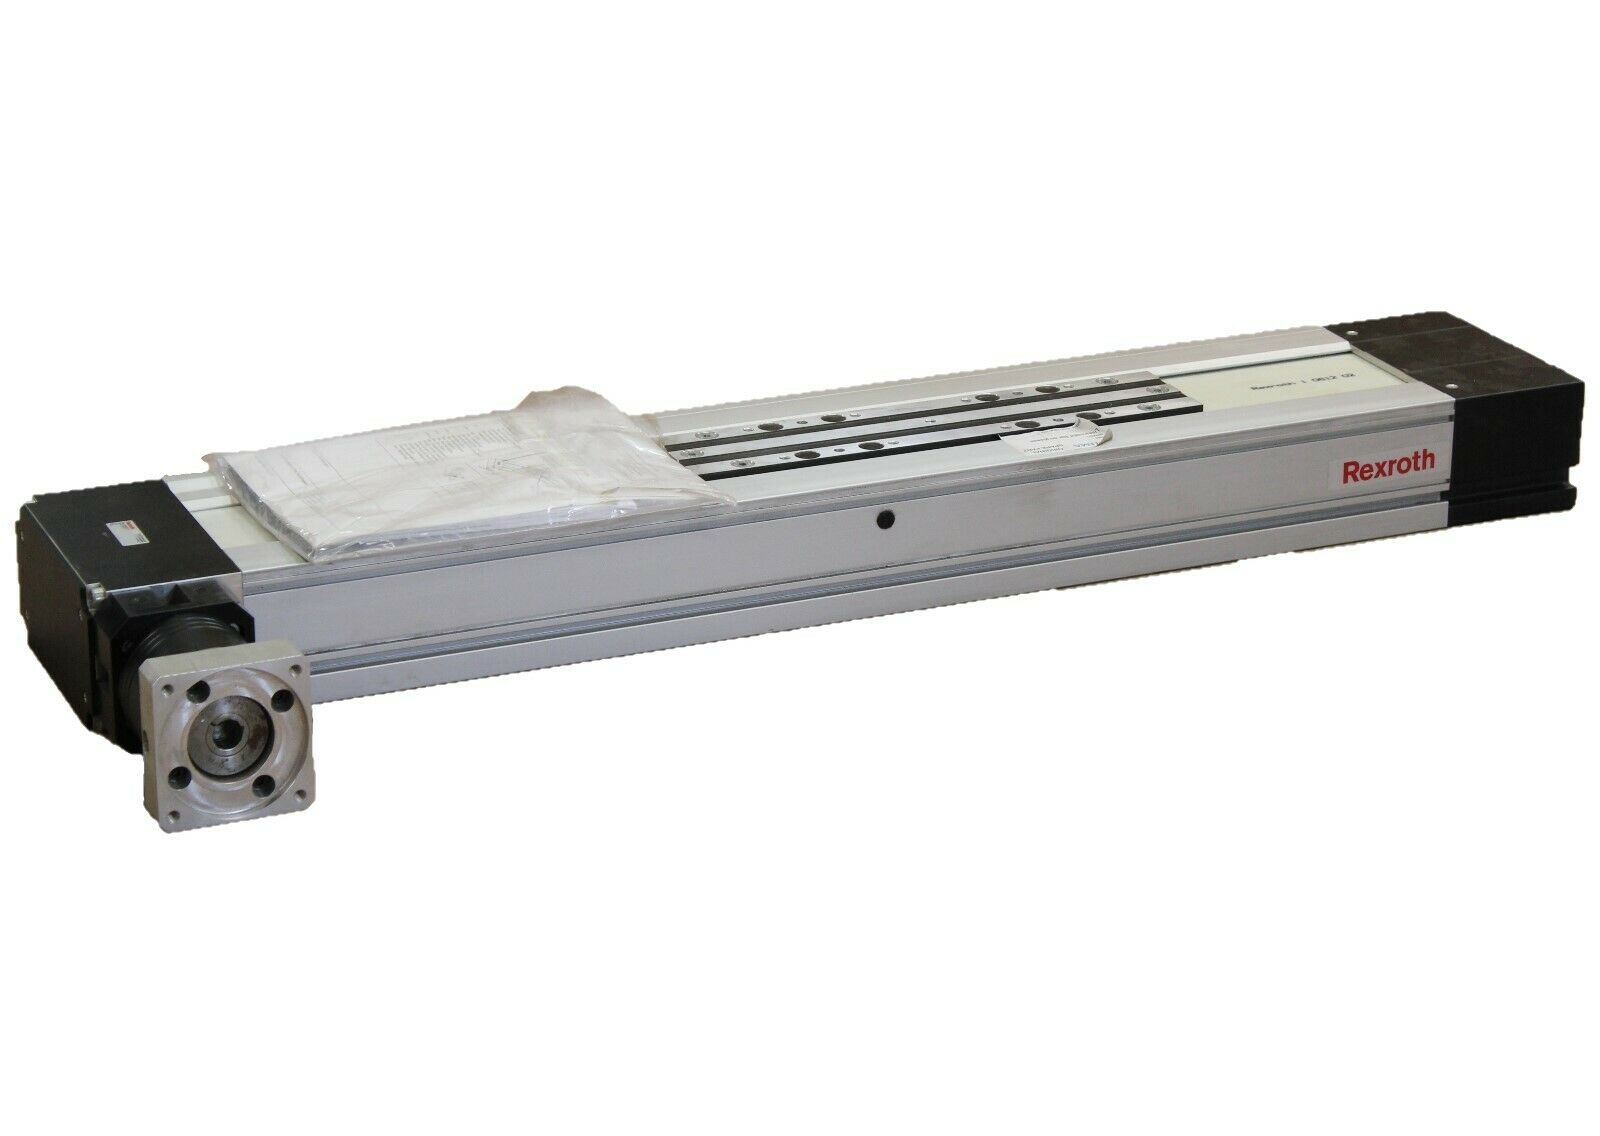 Rexroth R055716705 Linear Actuator 500mm Stroke